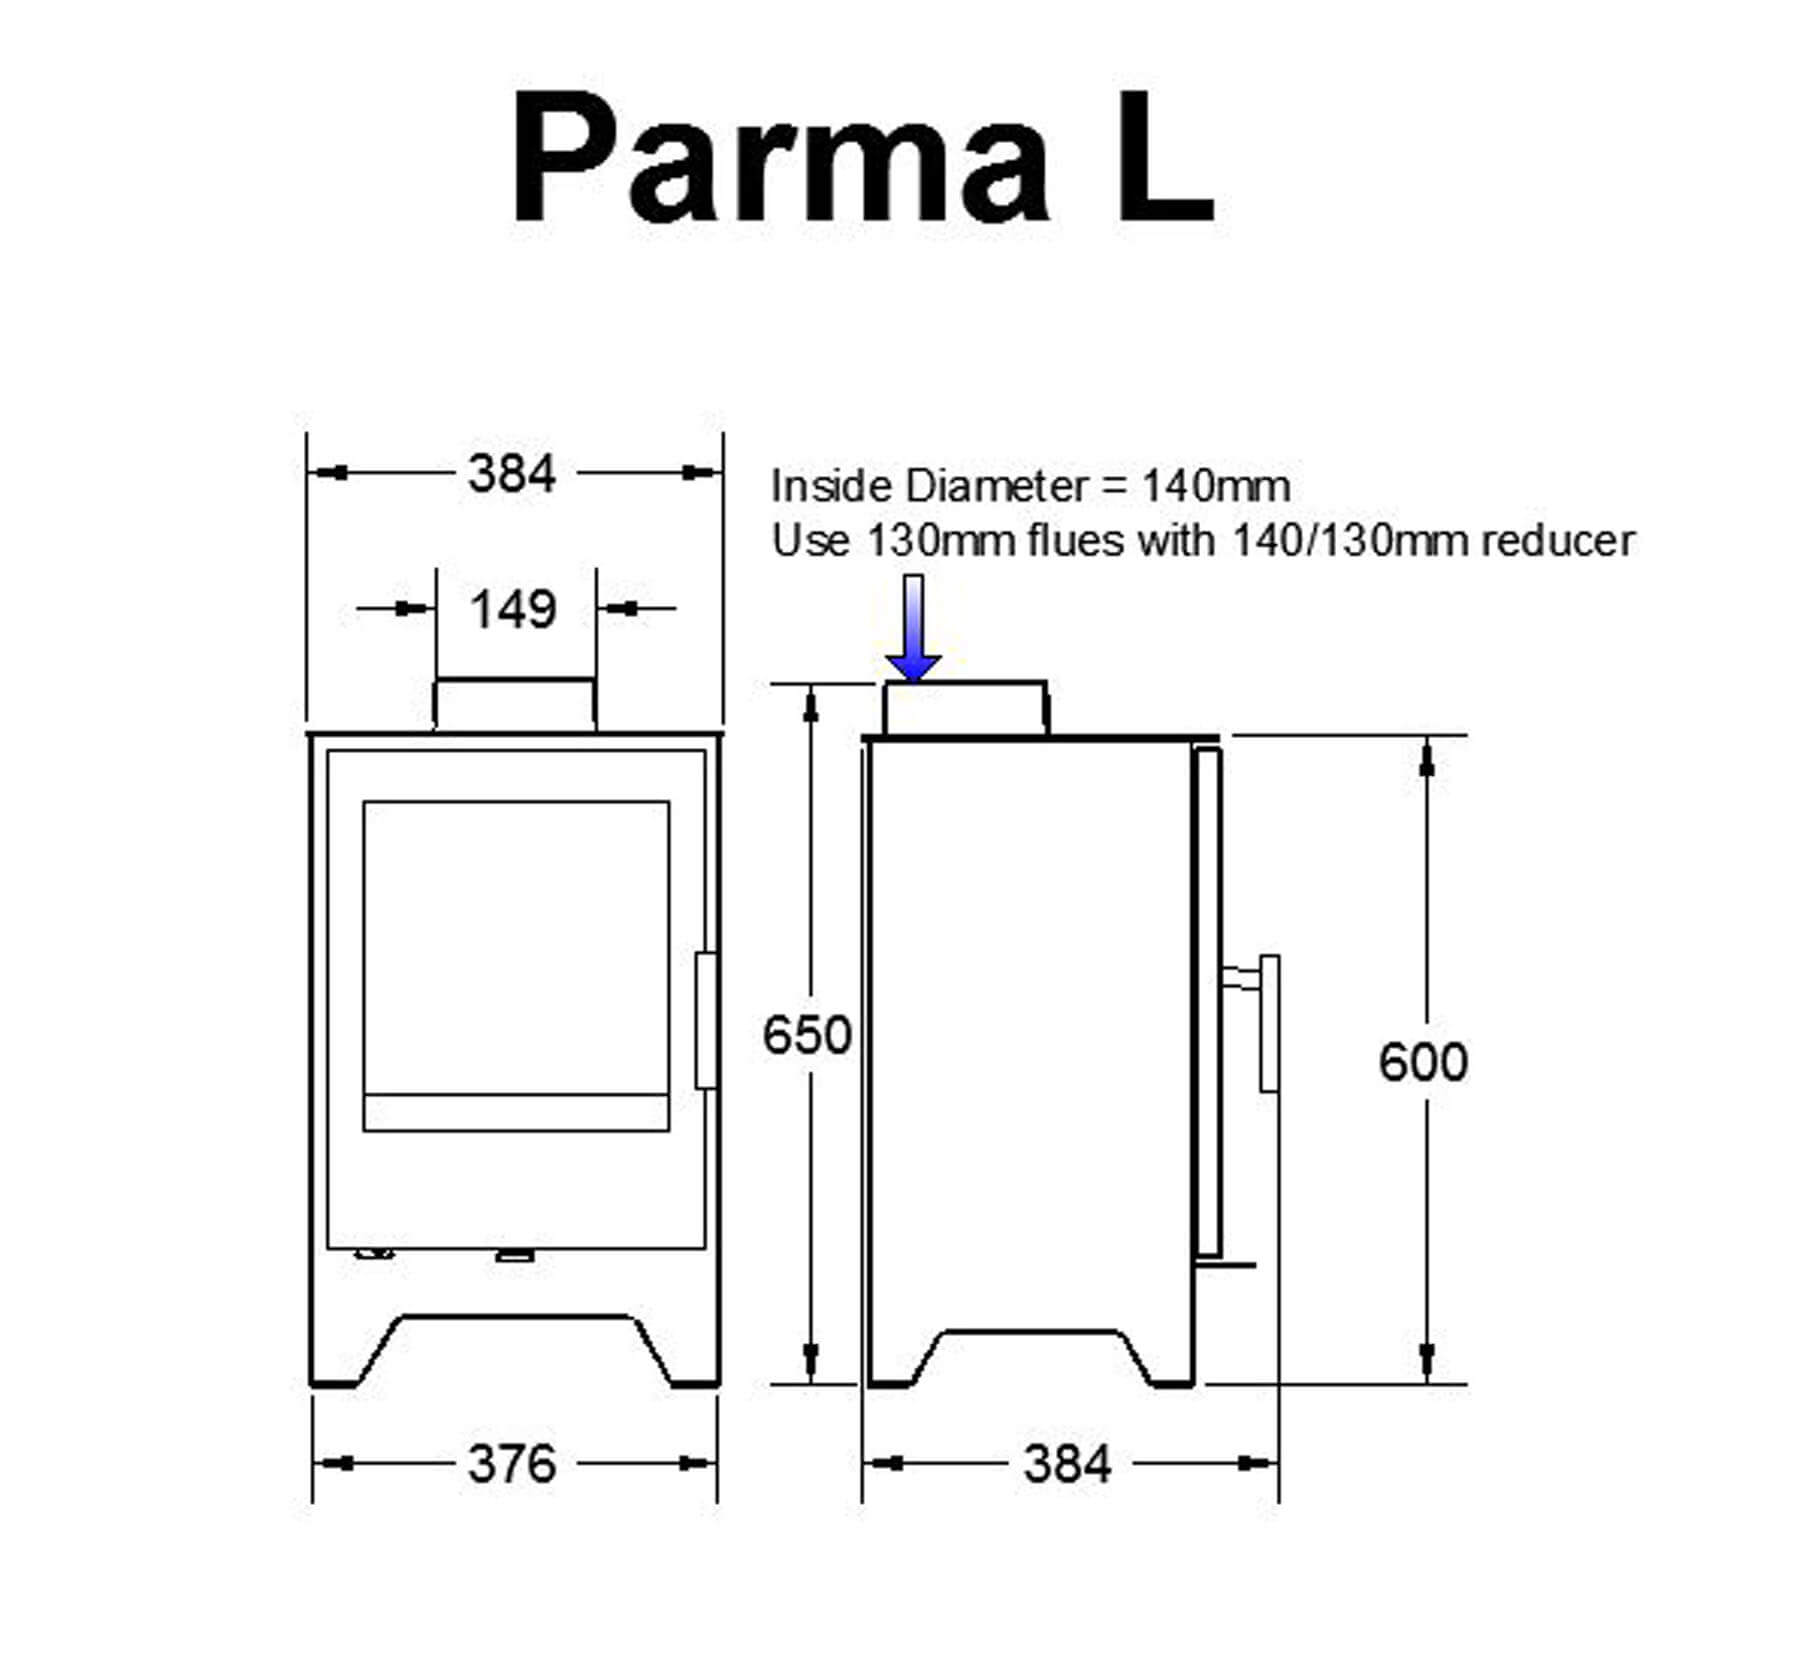 Technical-Specifications-Parma-L-Fireplace